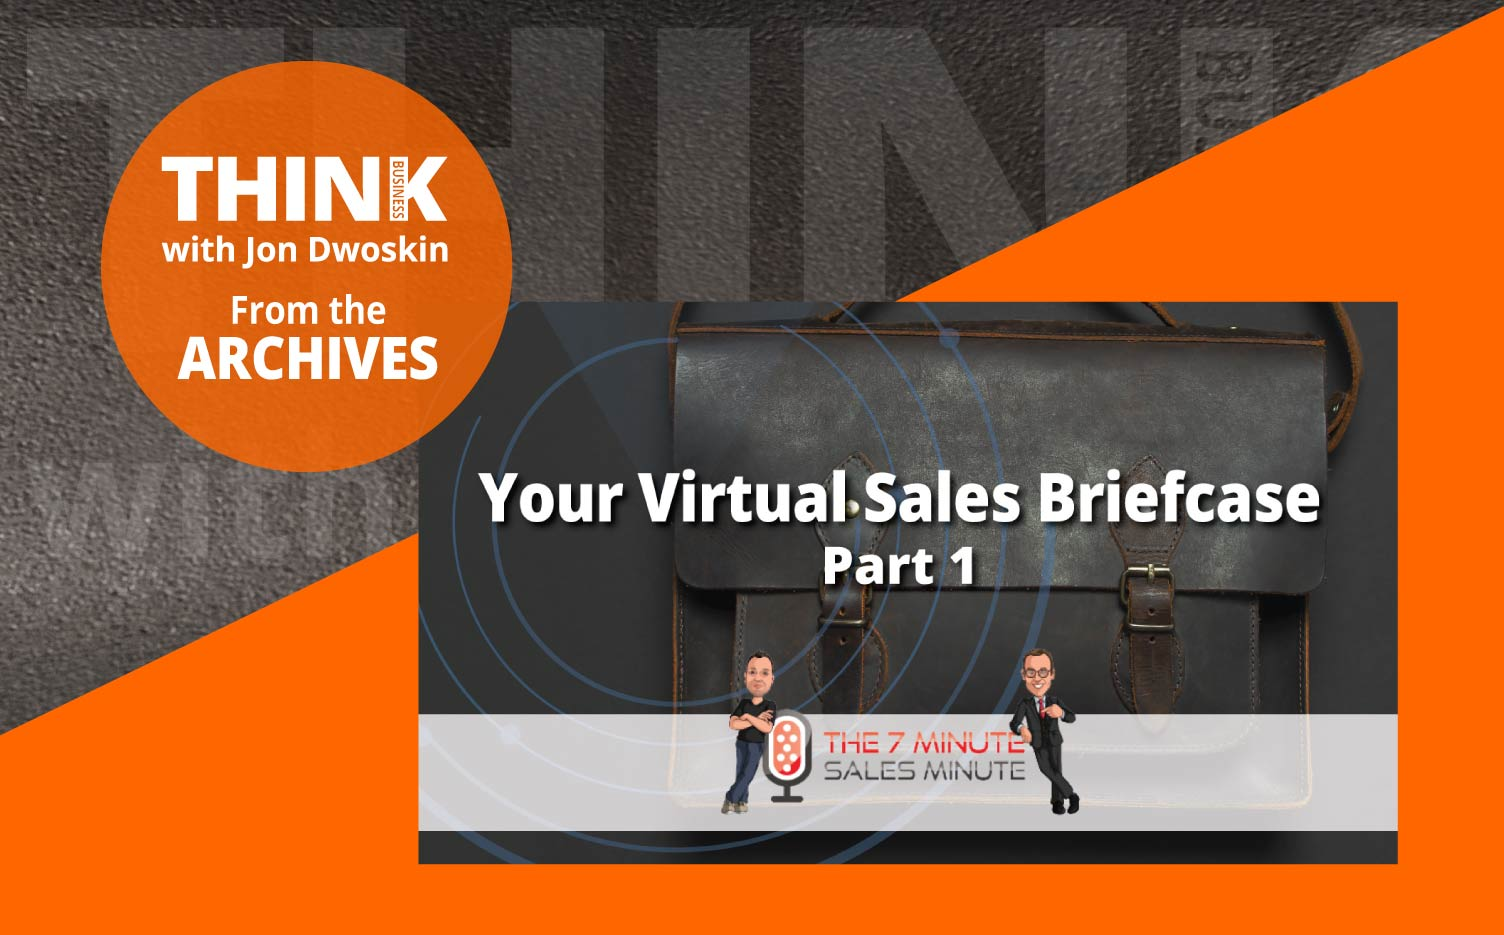 THINK Business Podcast: Your Virtual Sales Briefcase